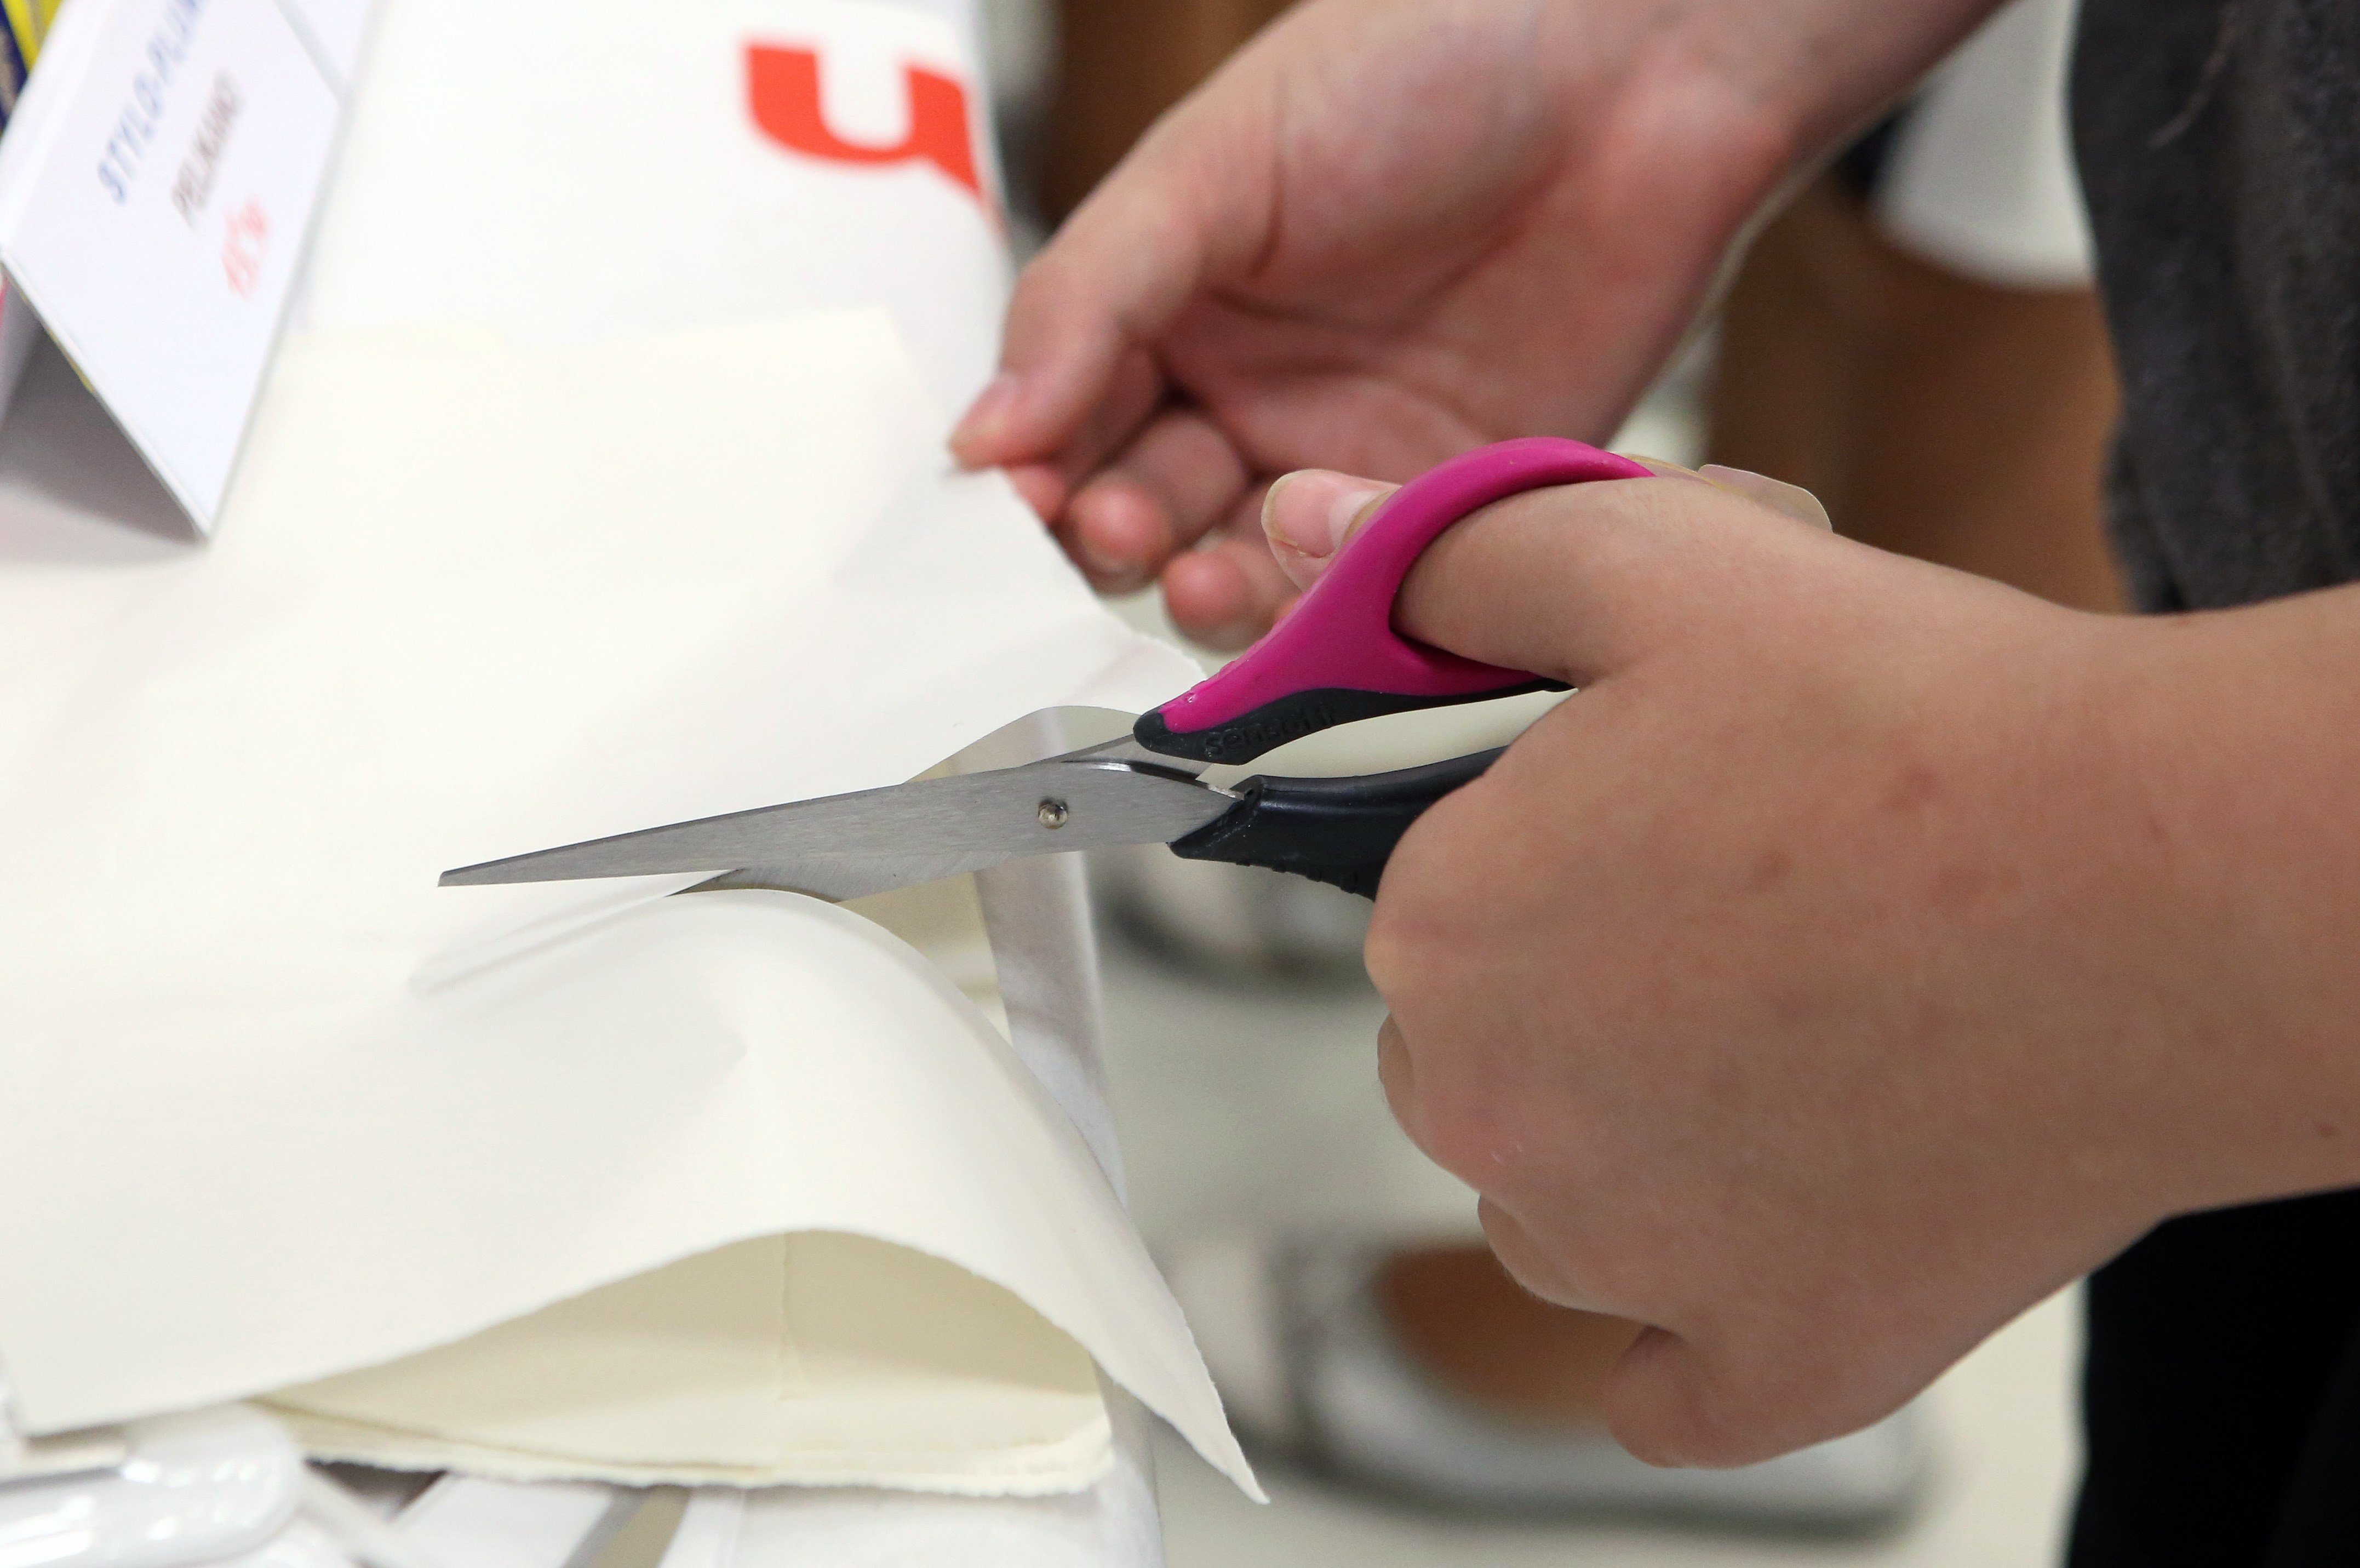 A person cuts paper with scissors for left-handed users